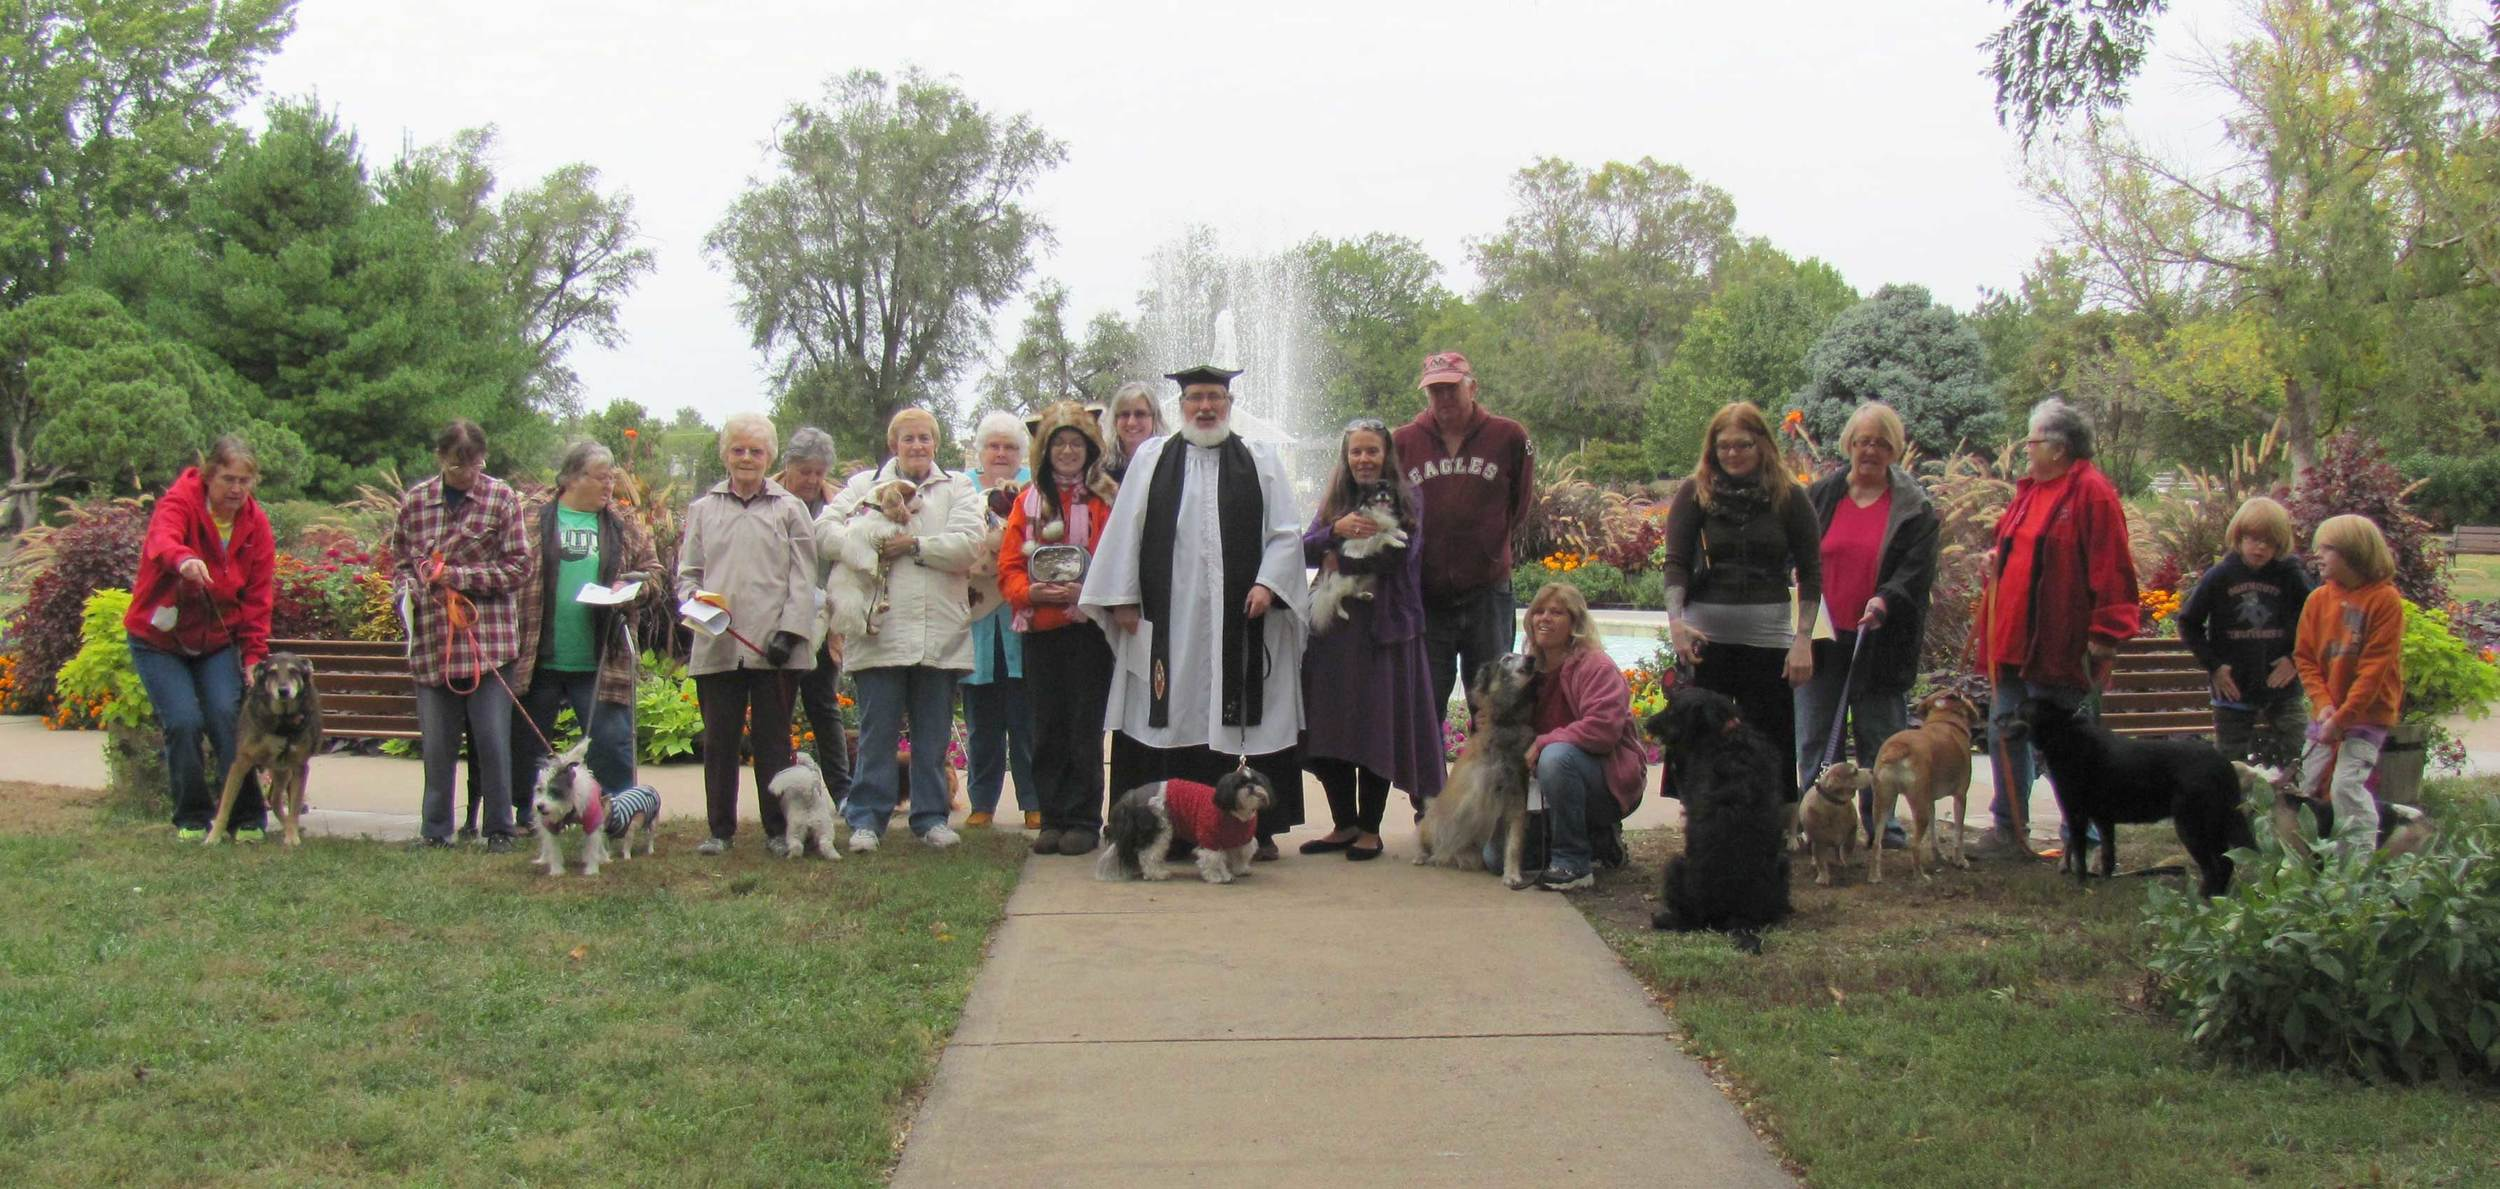 St. John's fourth annual Blessing of the Pets.